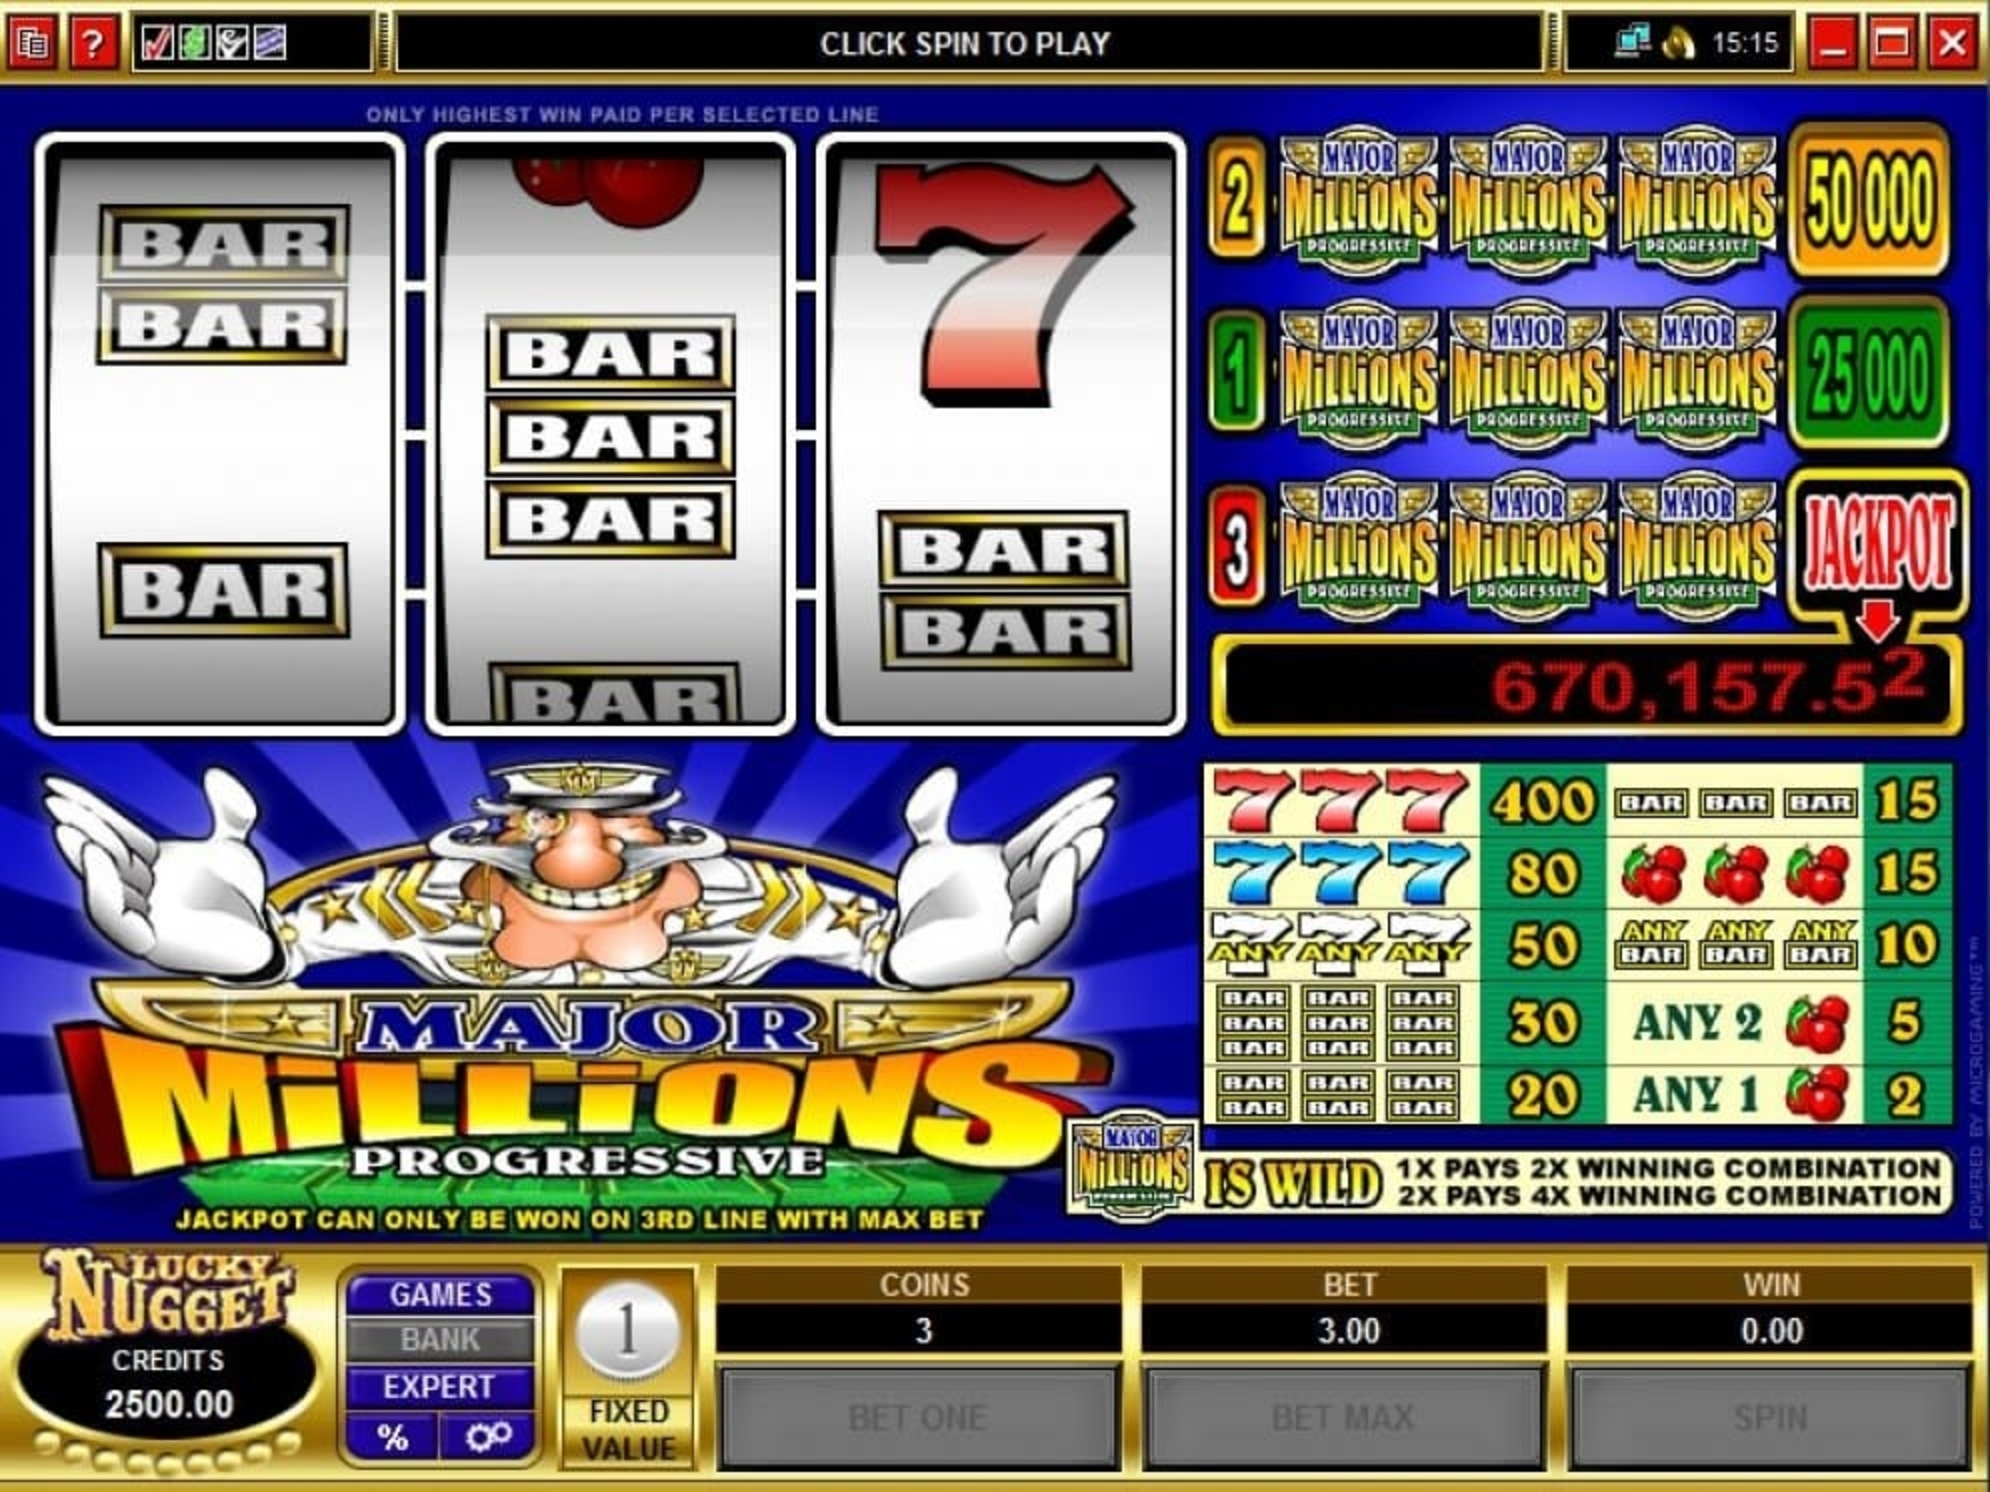 The Major Millions Online Slot Demo Game by Microgaming